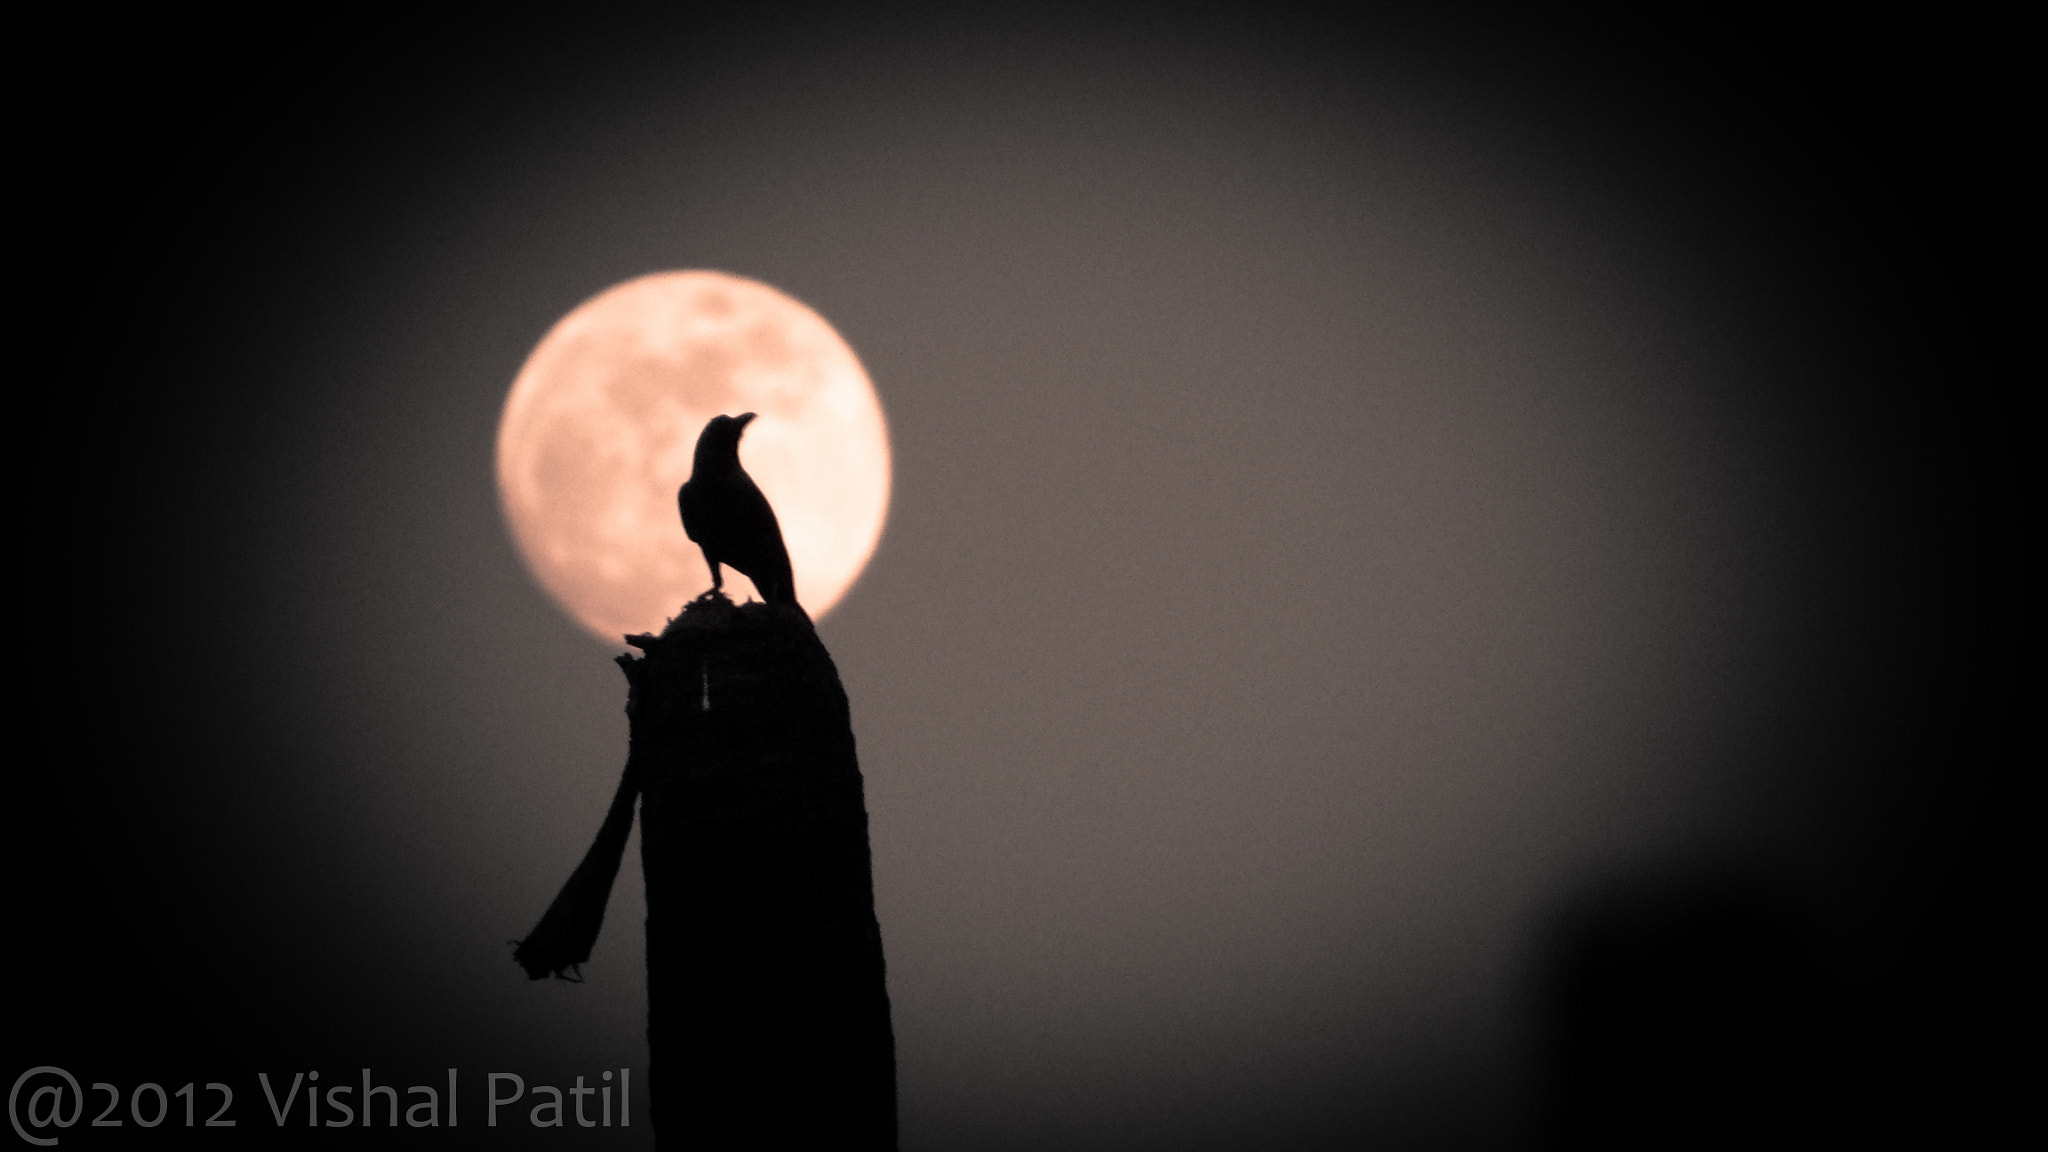 Photograph Moonlight by Vishal Patil on 500px